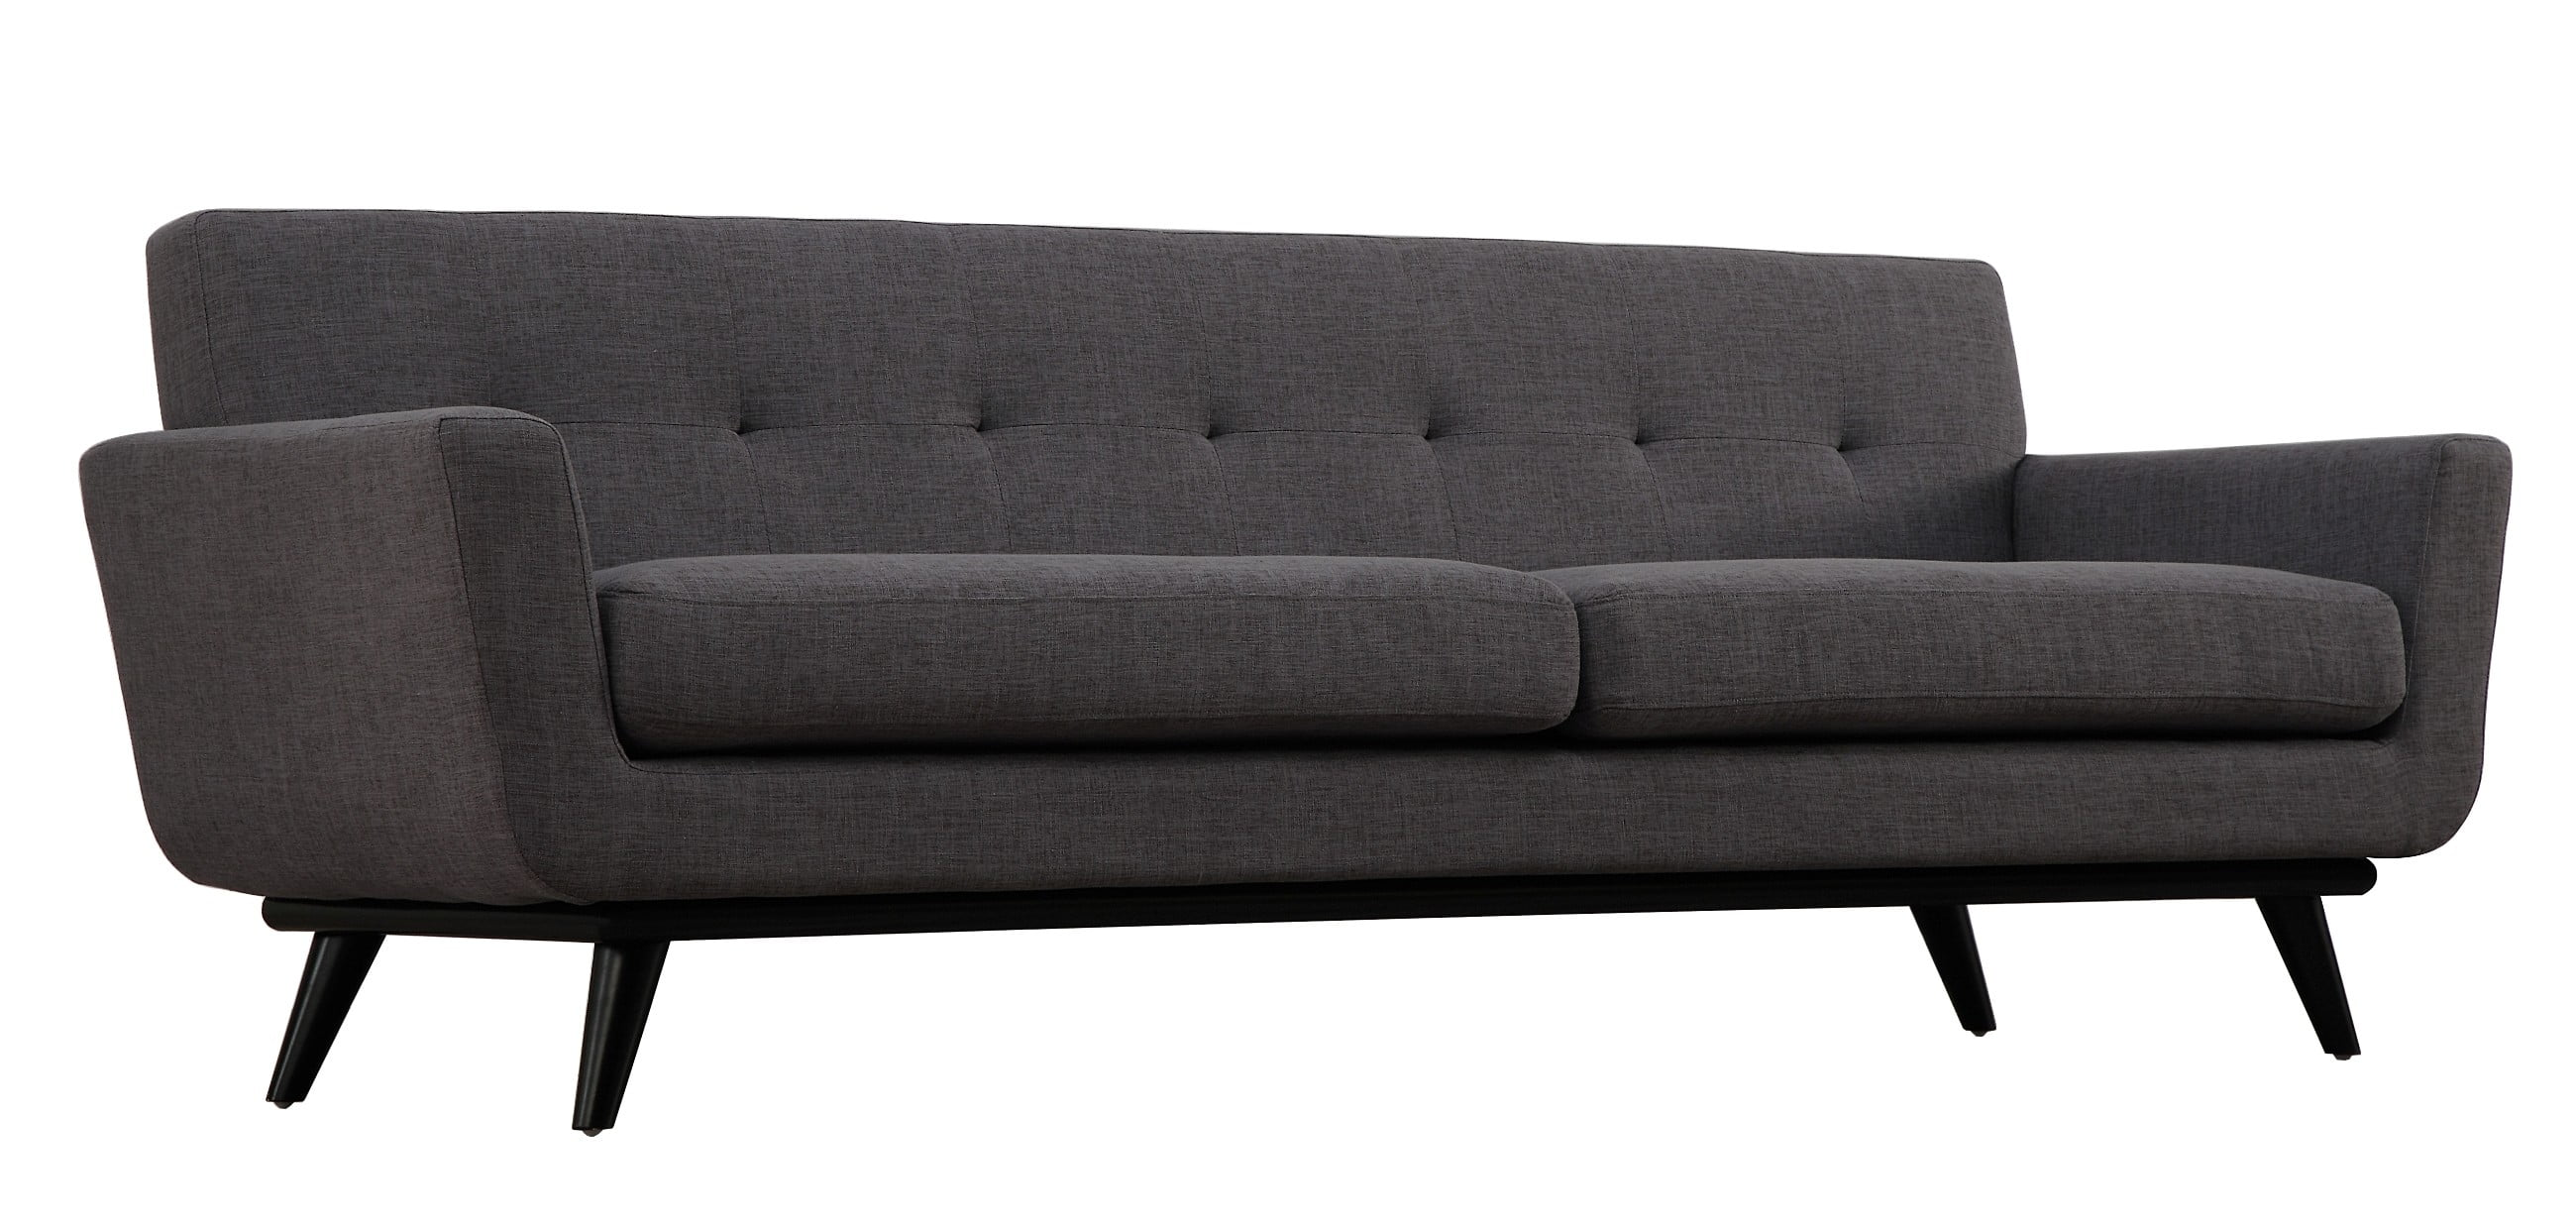 James Grey Linen Sofa From Tov Tov S20s G Coleman